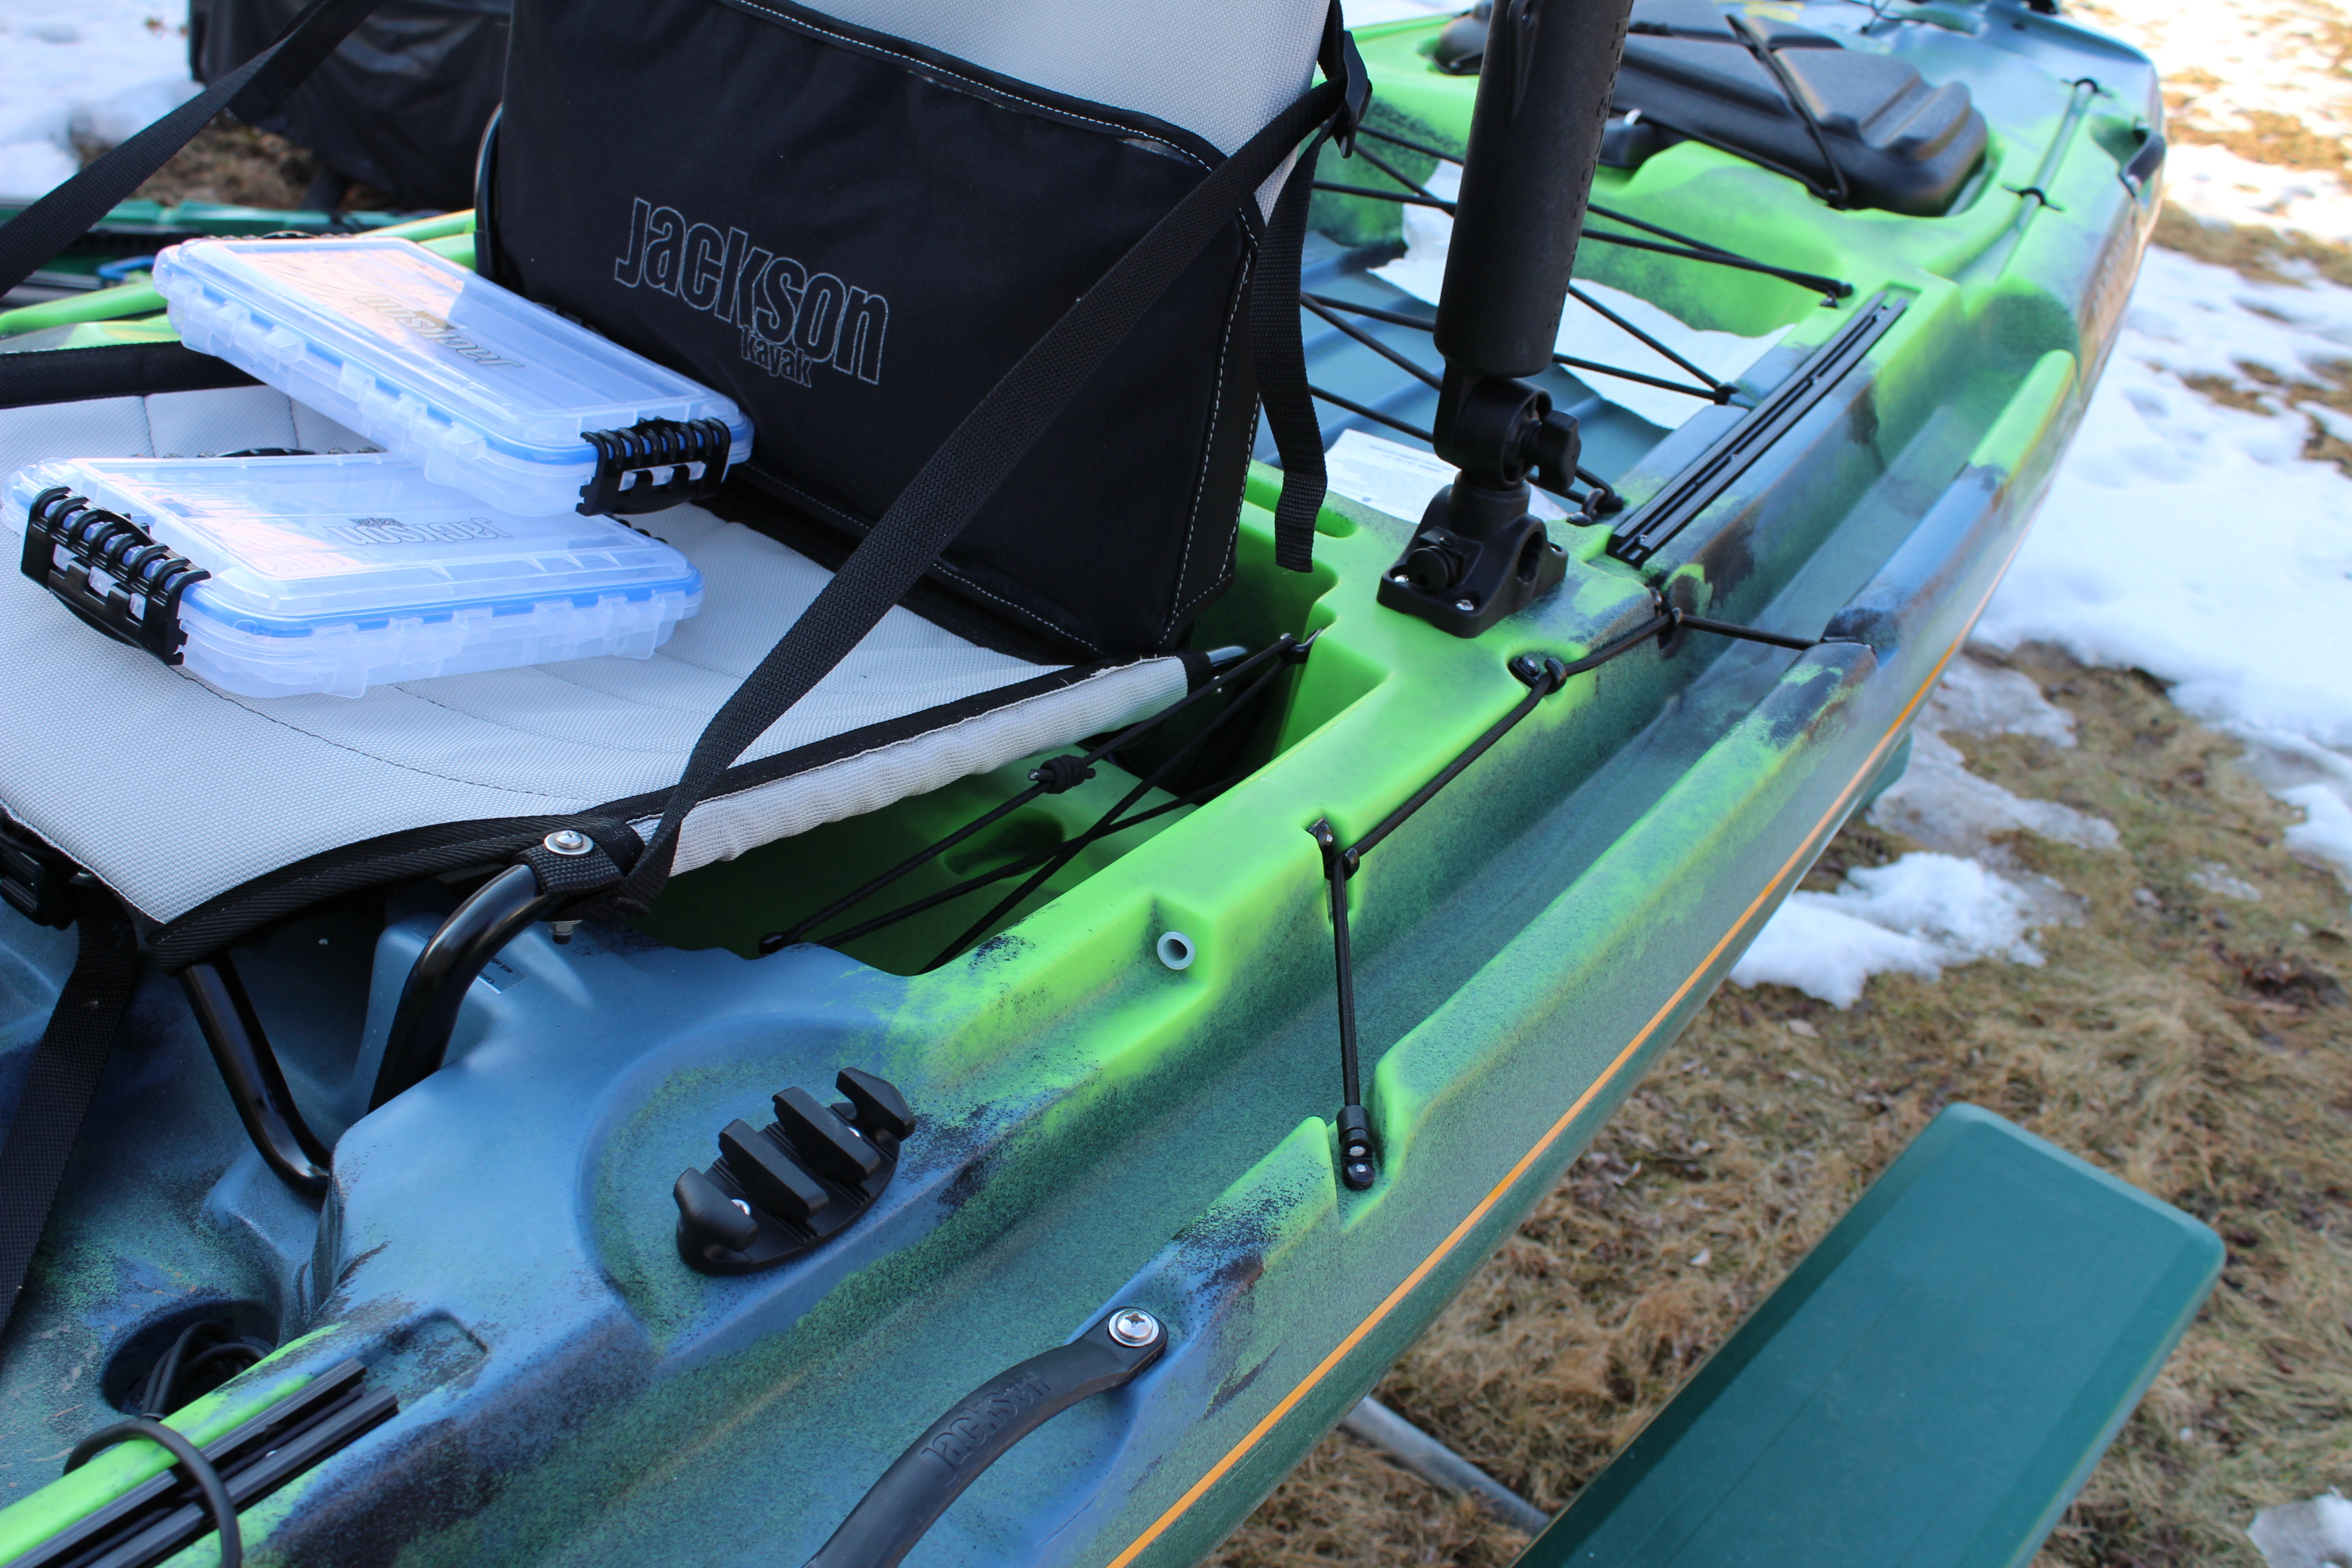 First look at the 2014 Jackson Kayak Big Rig - The Plastic Hull